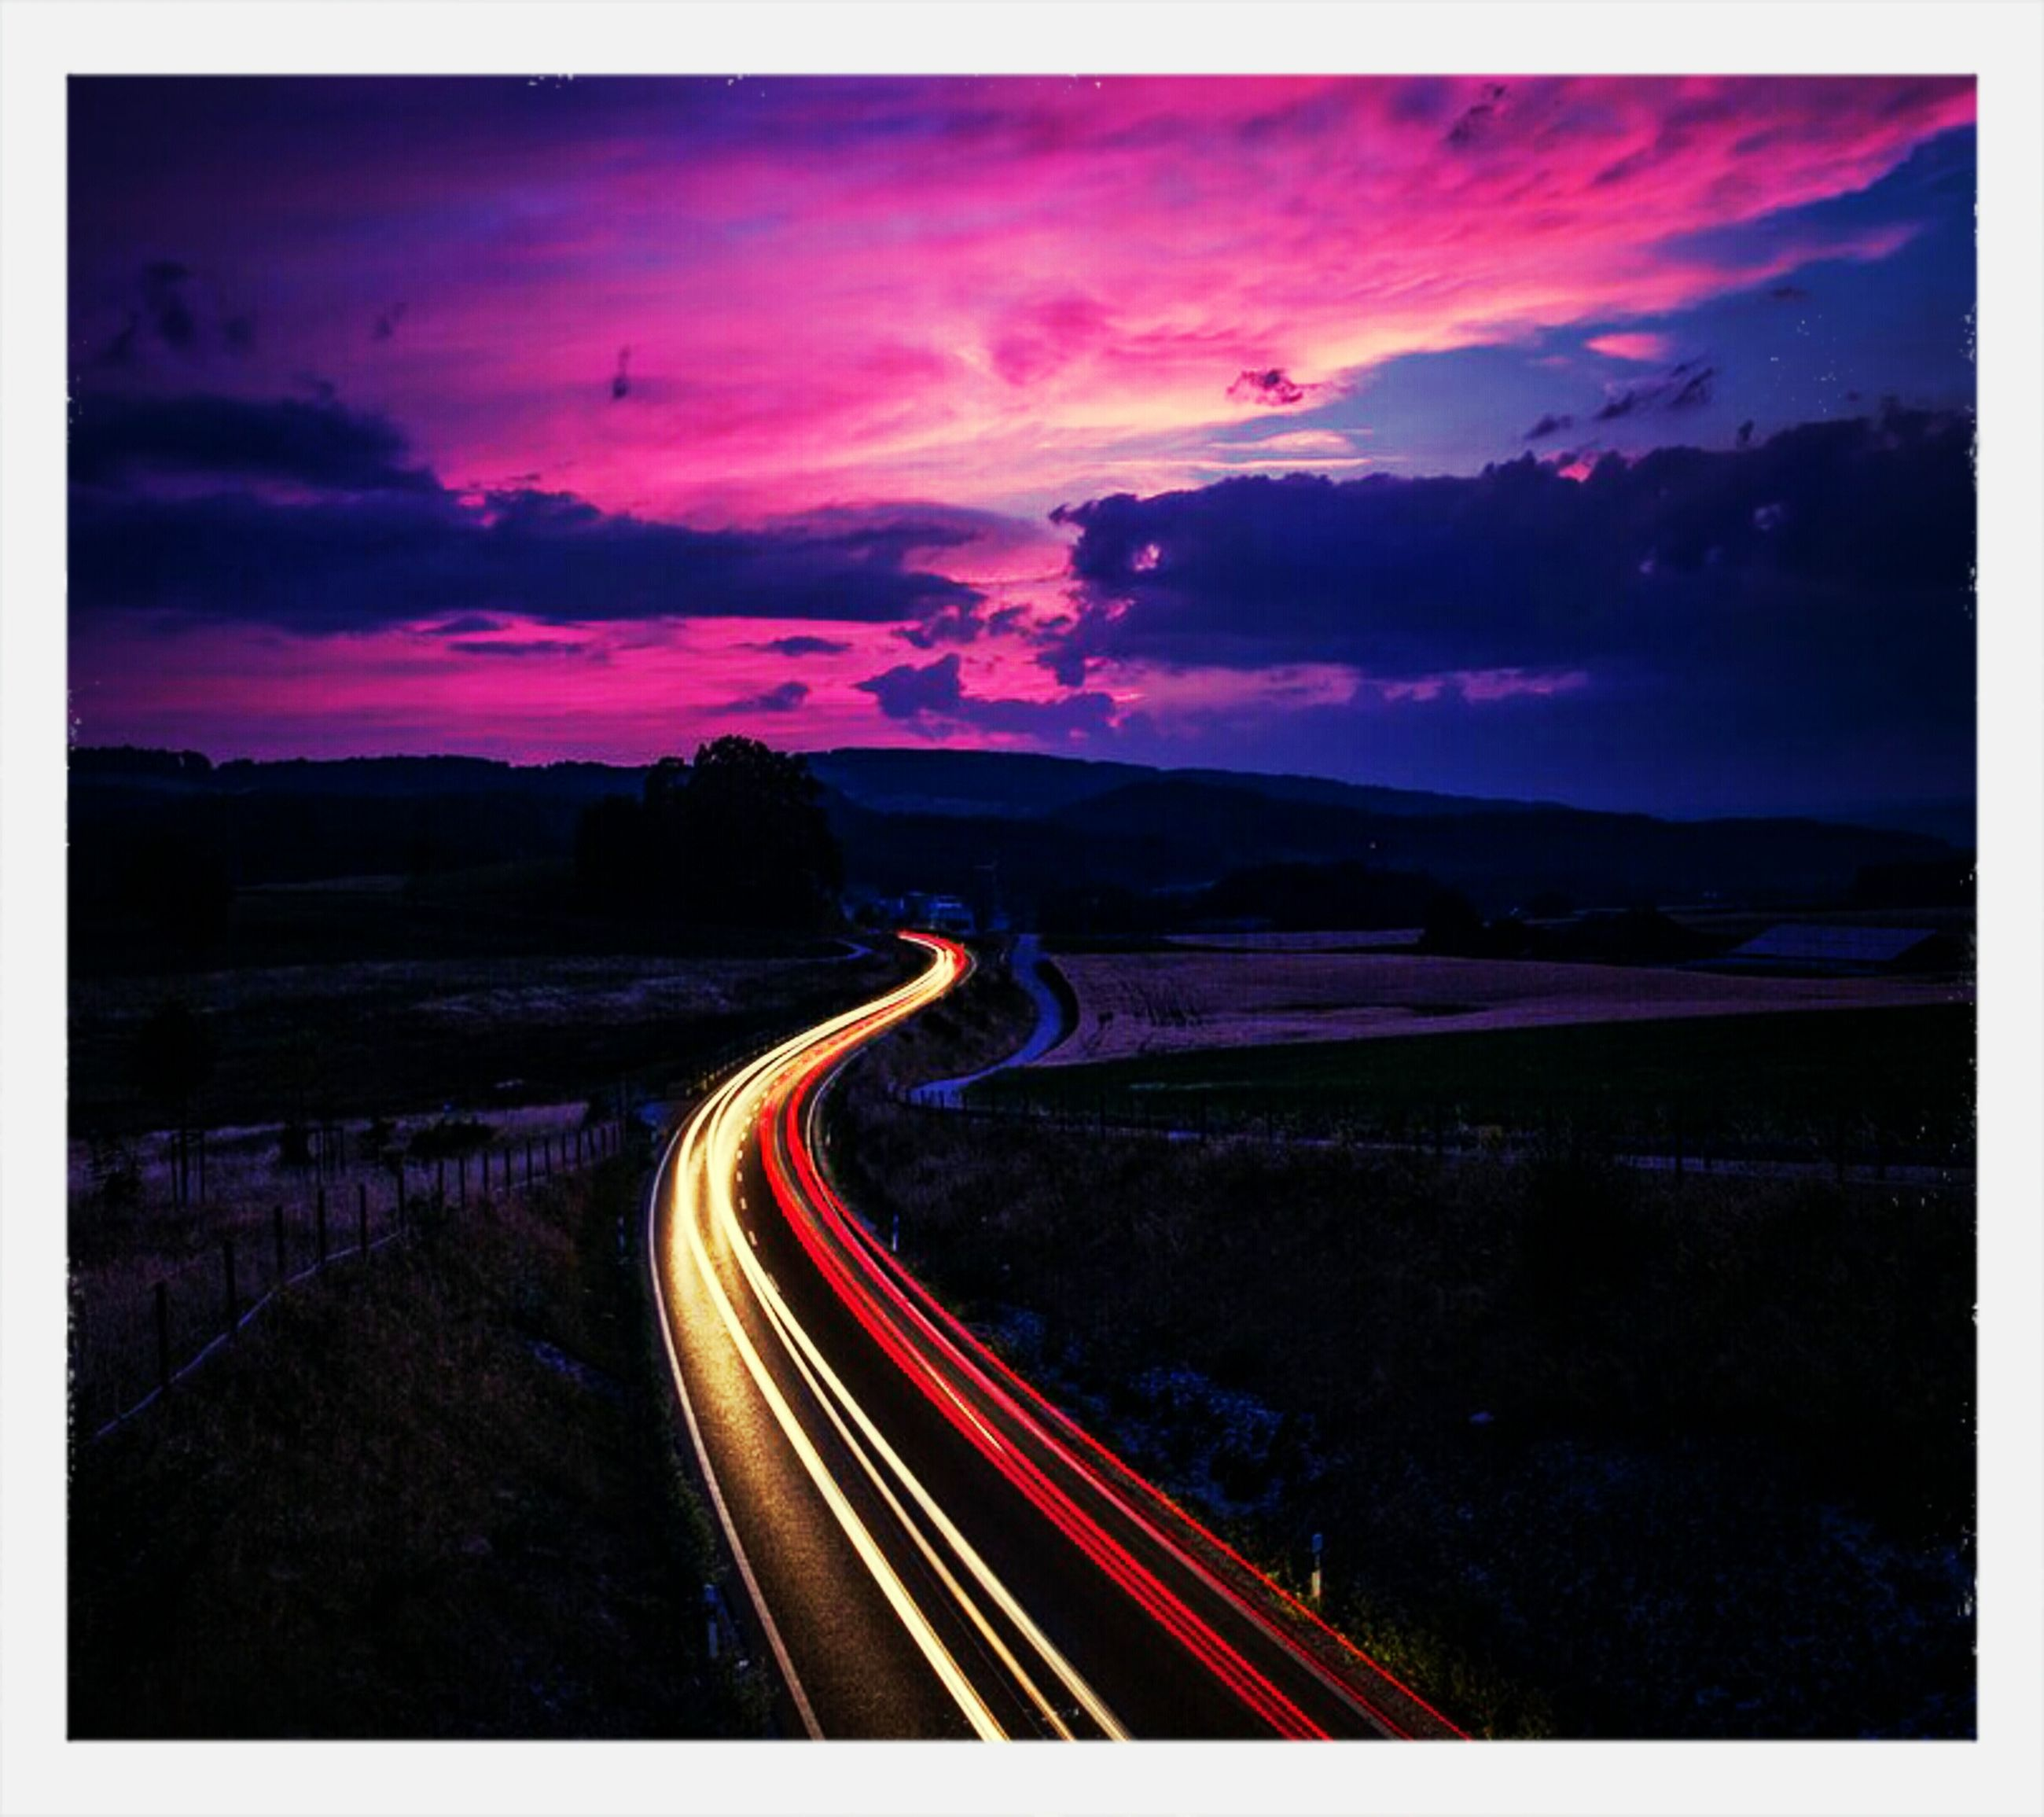 illuminated, light trail, long exposure, night, sky, transportation, road, speed, motion, blurred motion, auto post production filter, transfer print, dusk, multi colored, the way forward, red, street, outdoors, cloud - sky, no people